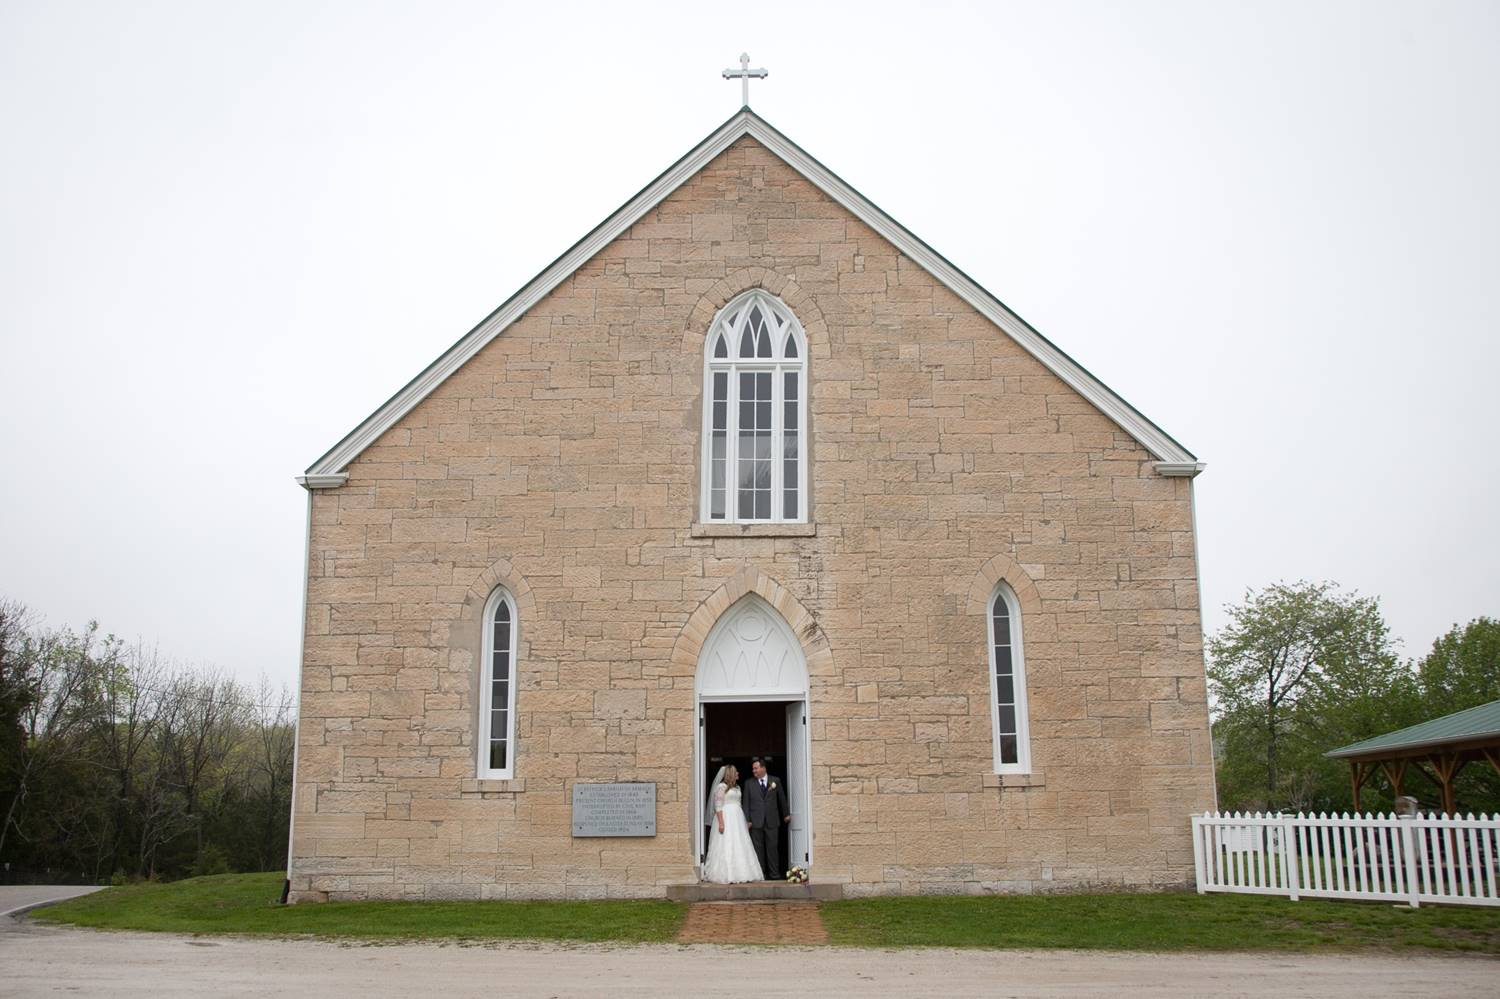 The Old Rock Church in Catawissa, MO (Not at Haue Valley)